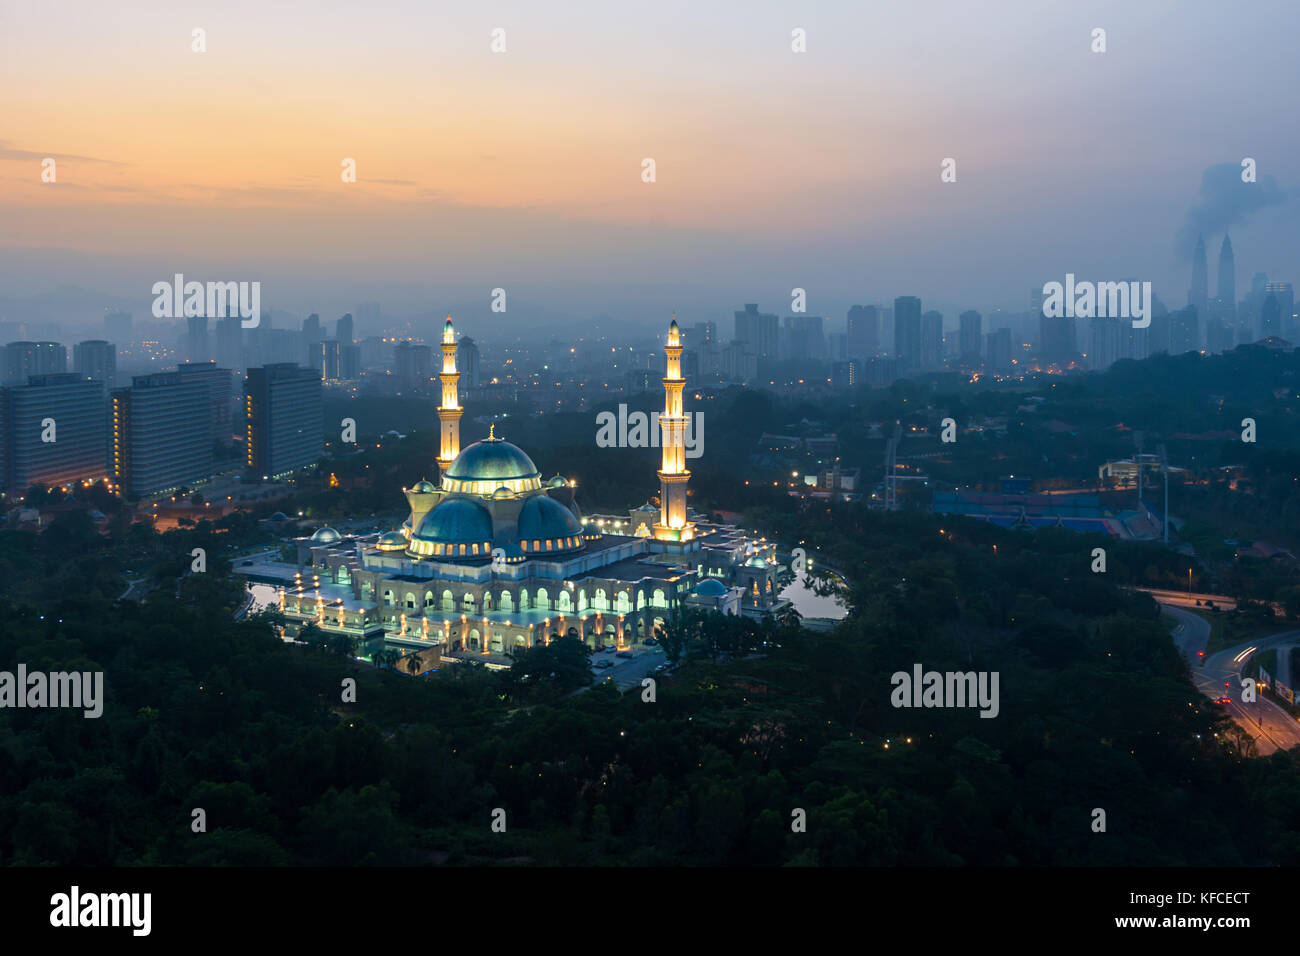 Aerial view of Federal Territory Mosque during sunrise. Federal Territory Mosque is a major mosque in Kuala Lumpur, - Stock Image